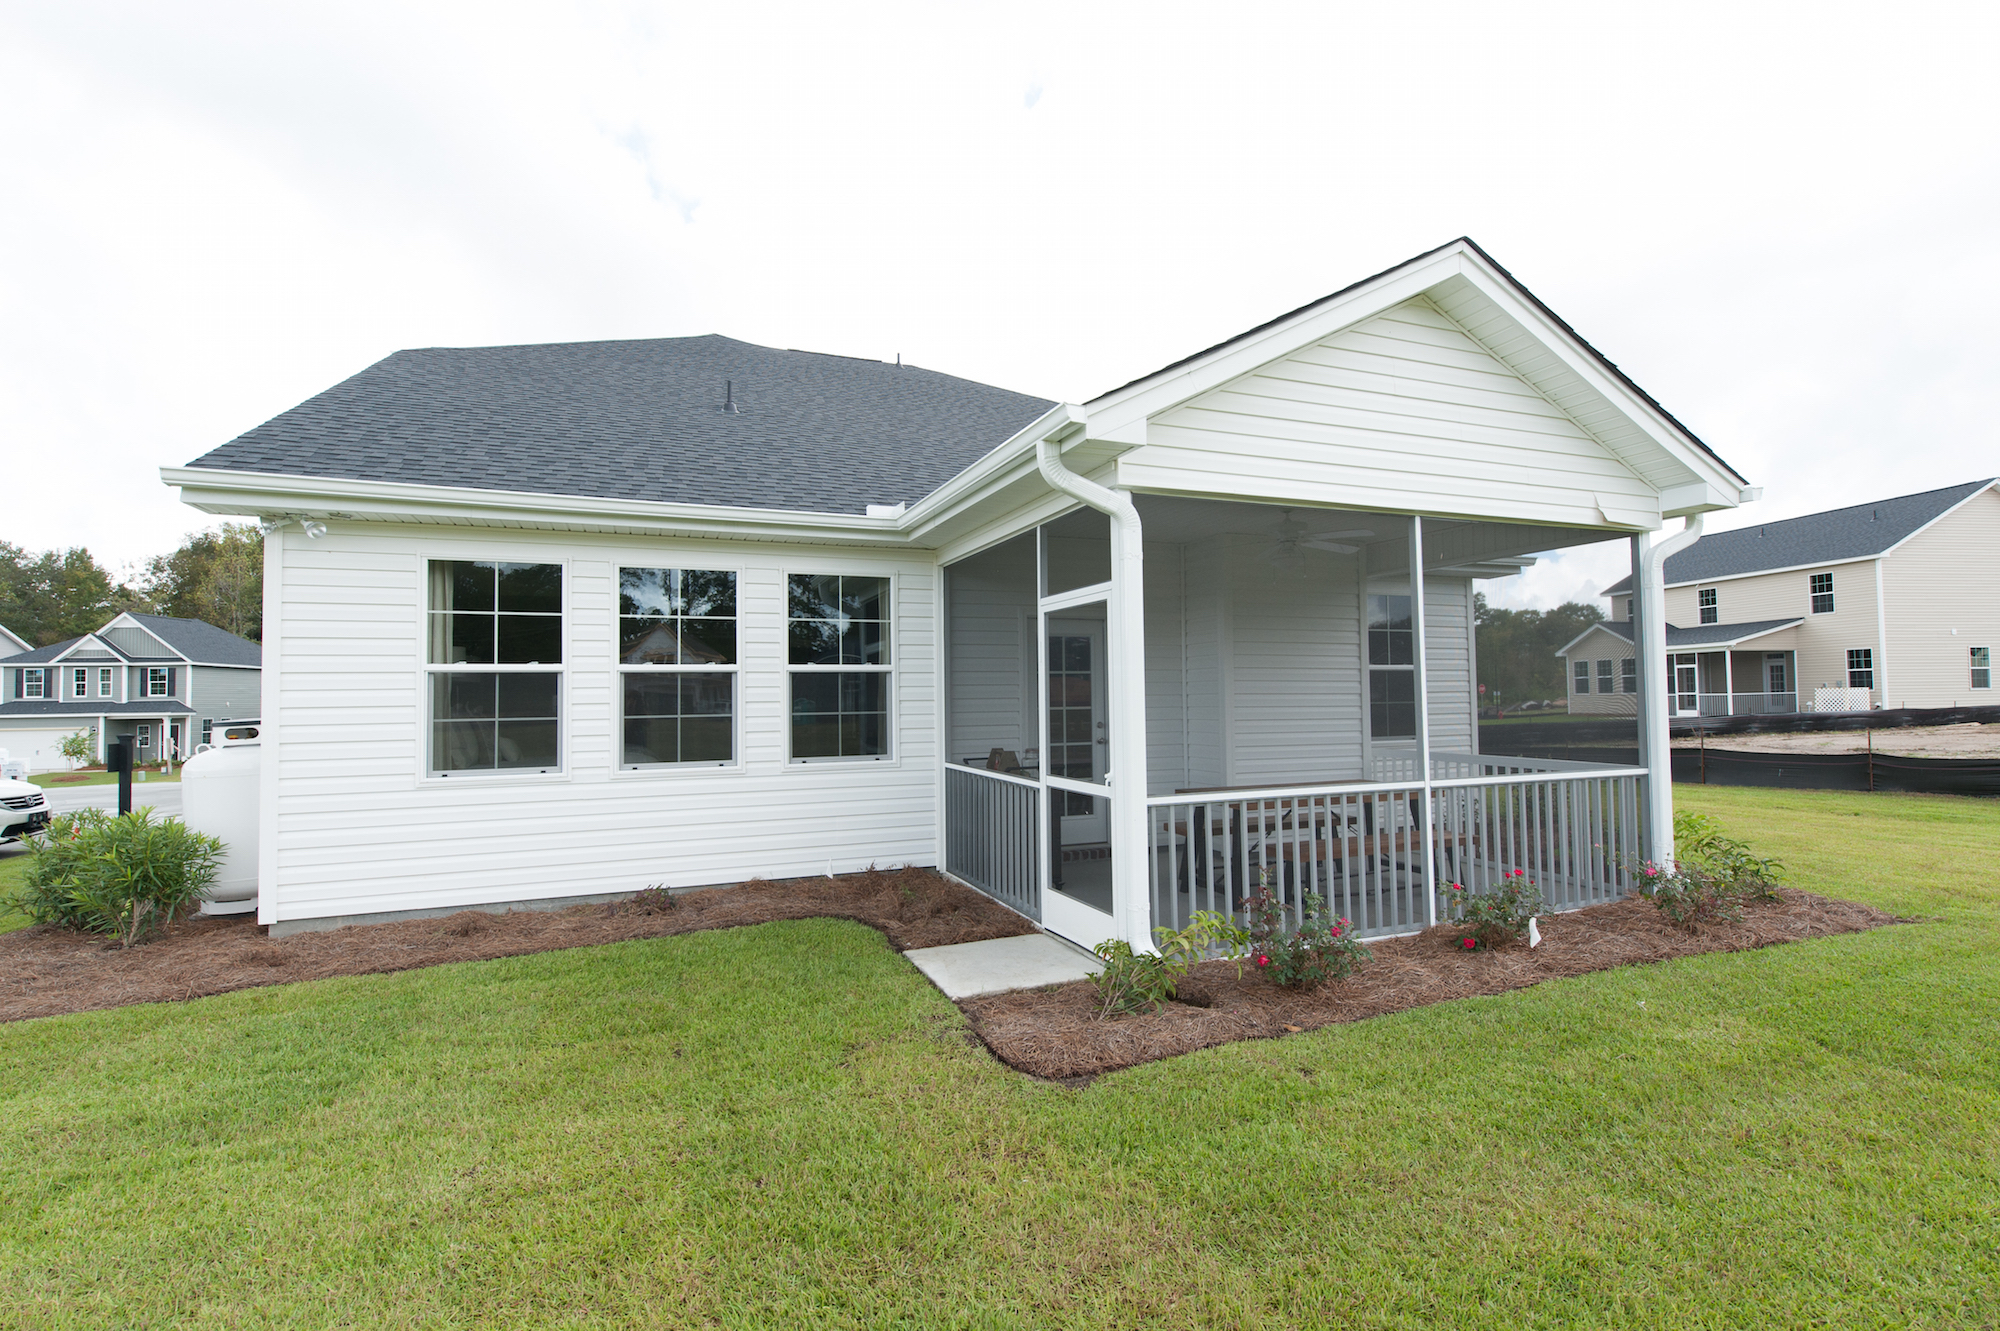 Crescent Homes Hunters Bend Summerville Porch